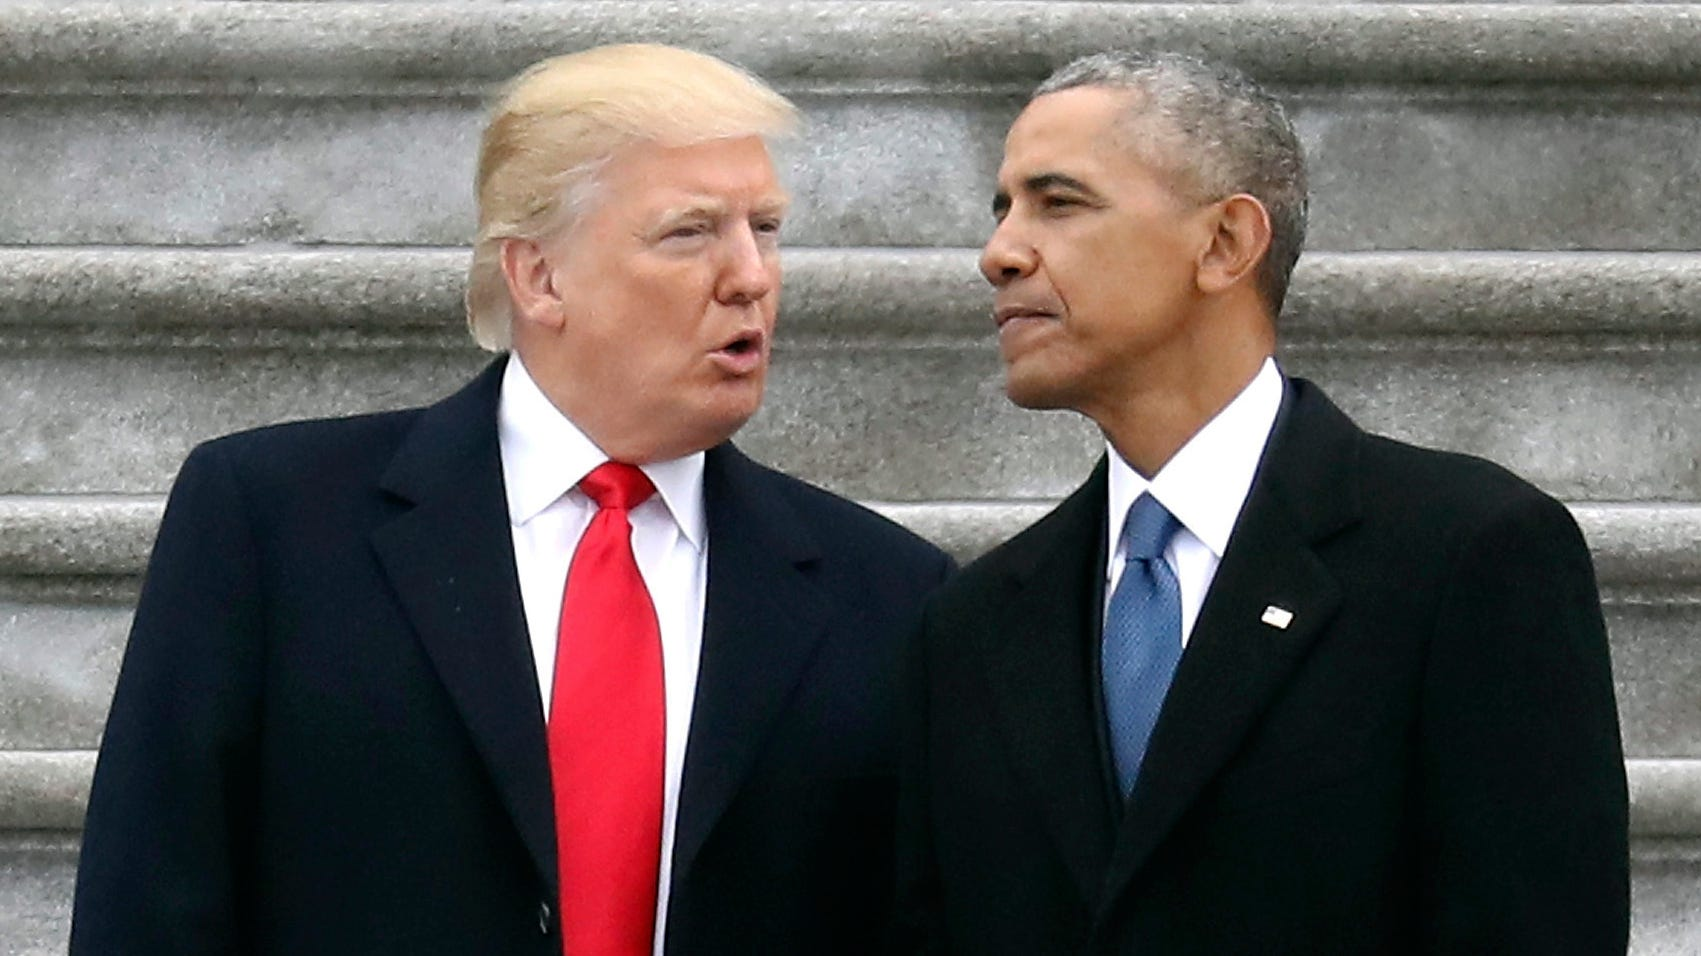 Image result for Who is the Better President, OBAMA or TRUMP